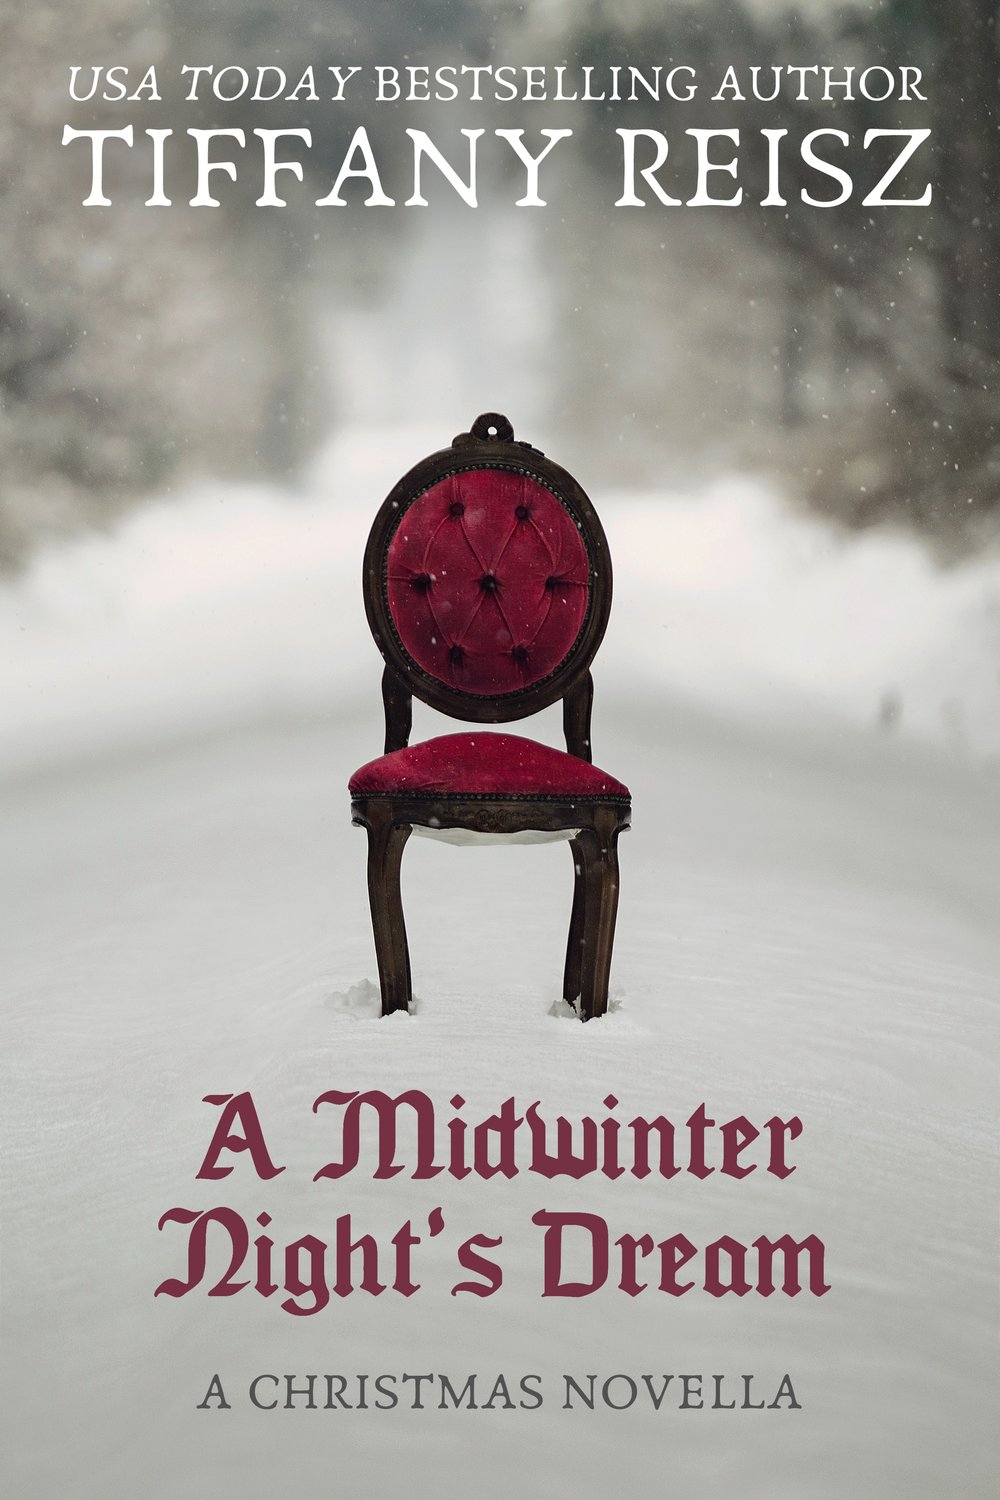 A-Midwinter-Nights-Dream-Kindle.jpg